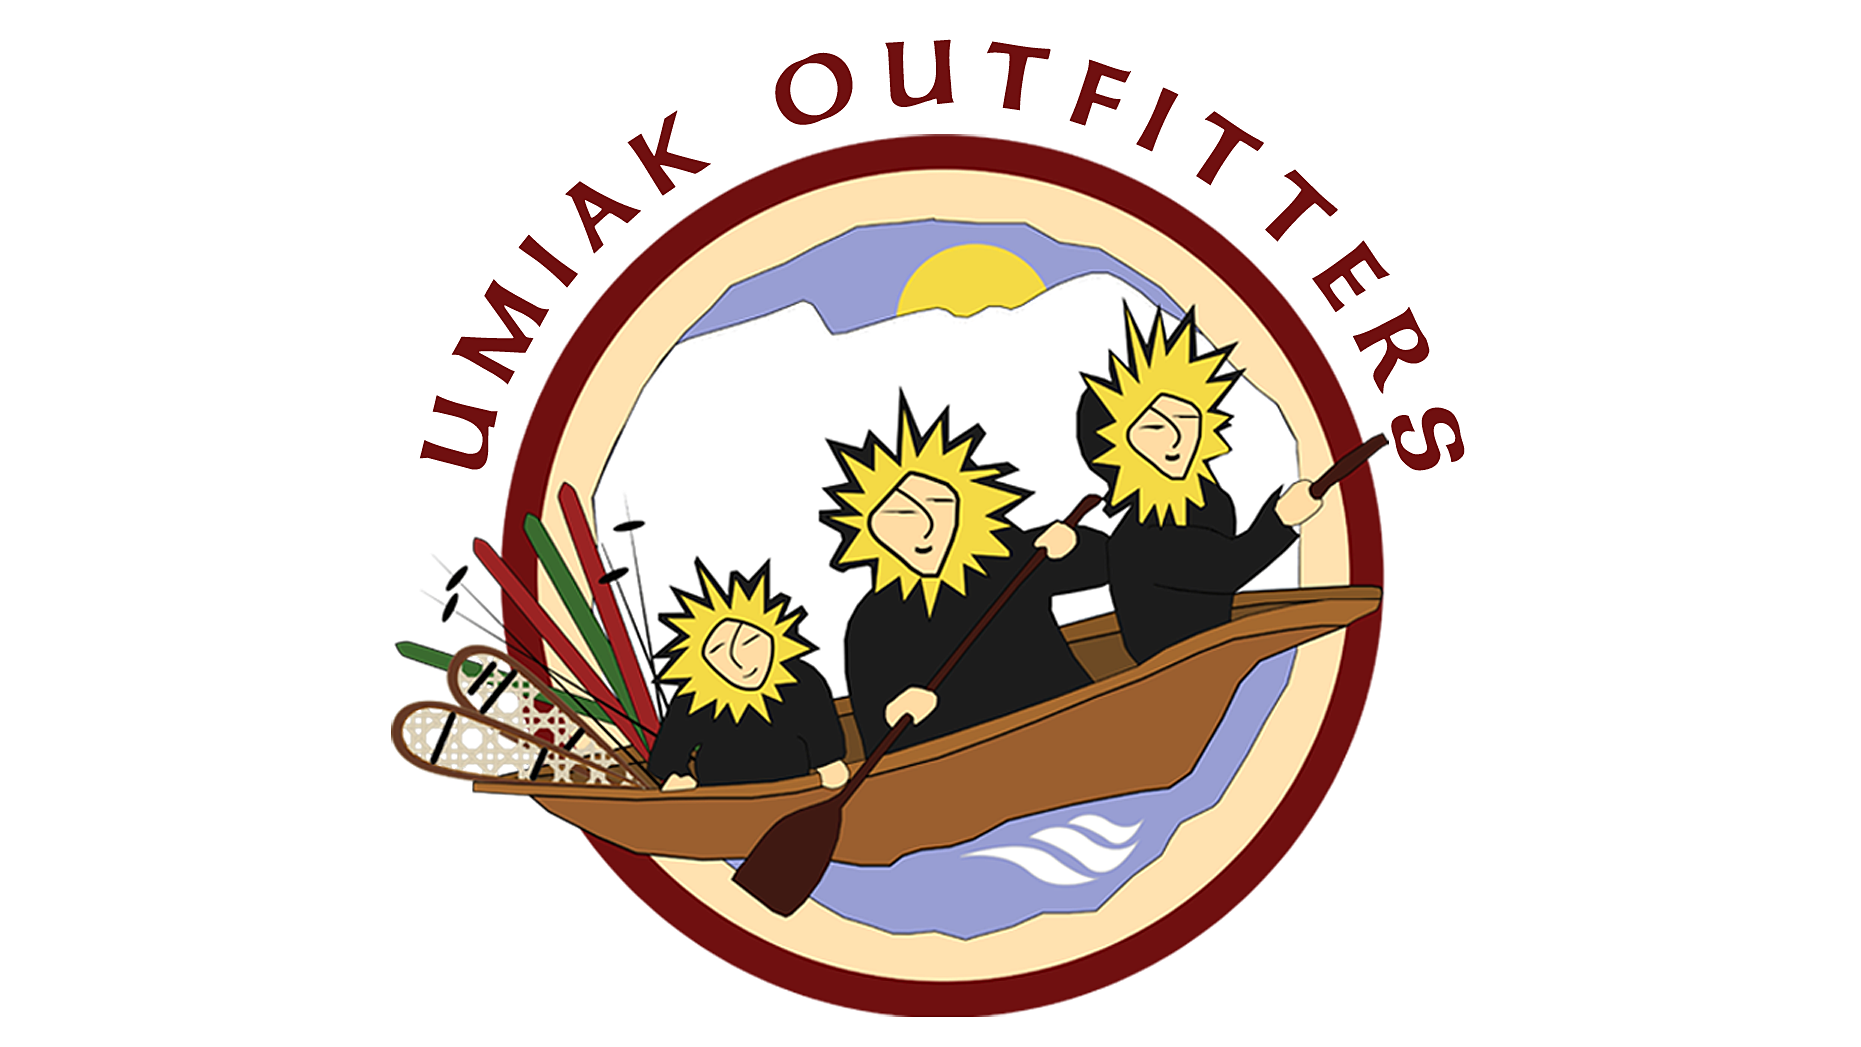 Umiak Outdoor Outfitters (Stowe)